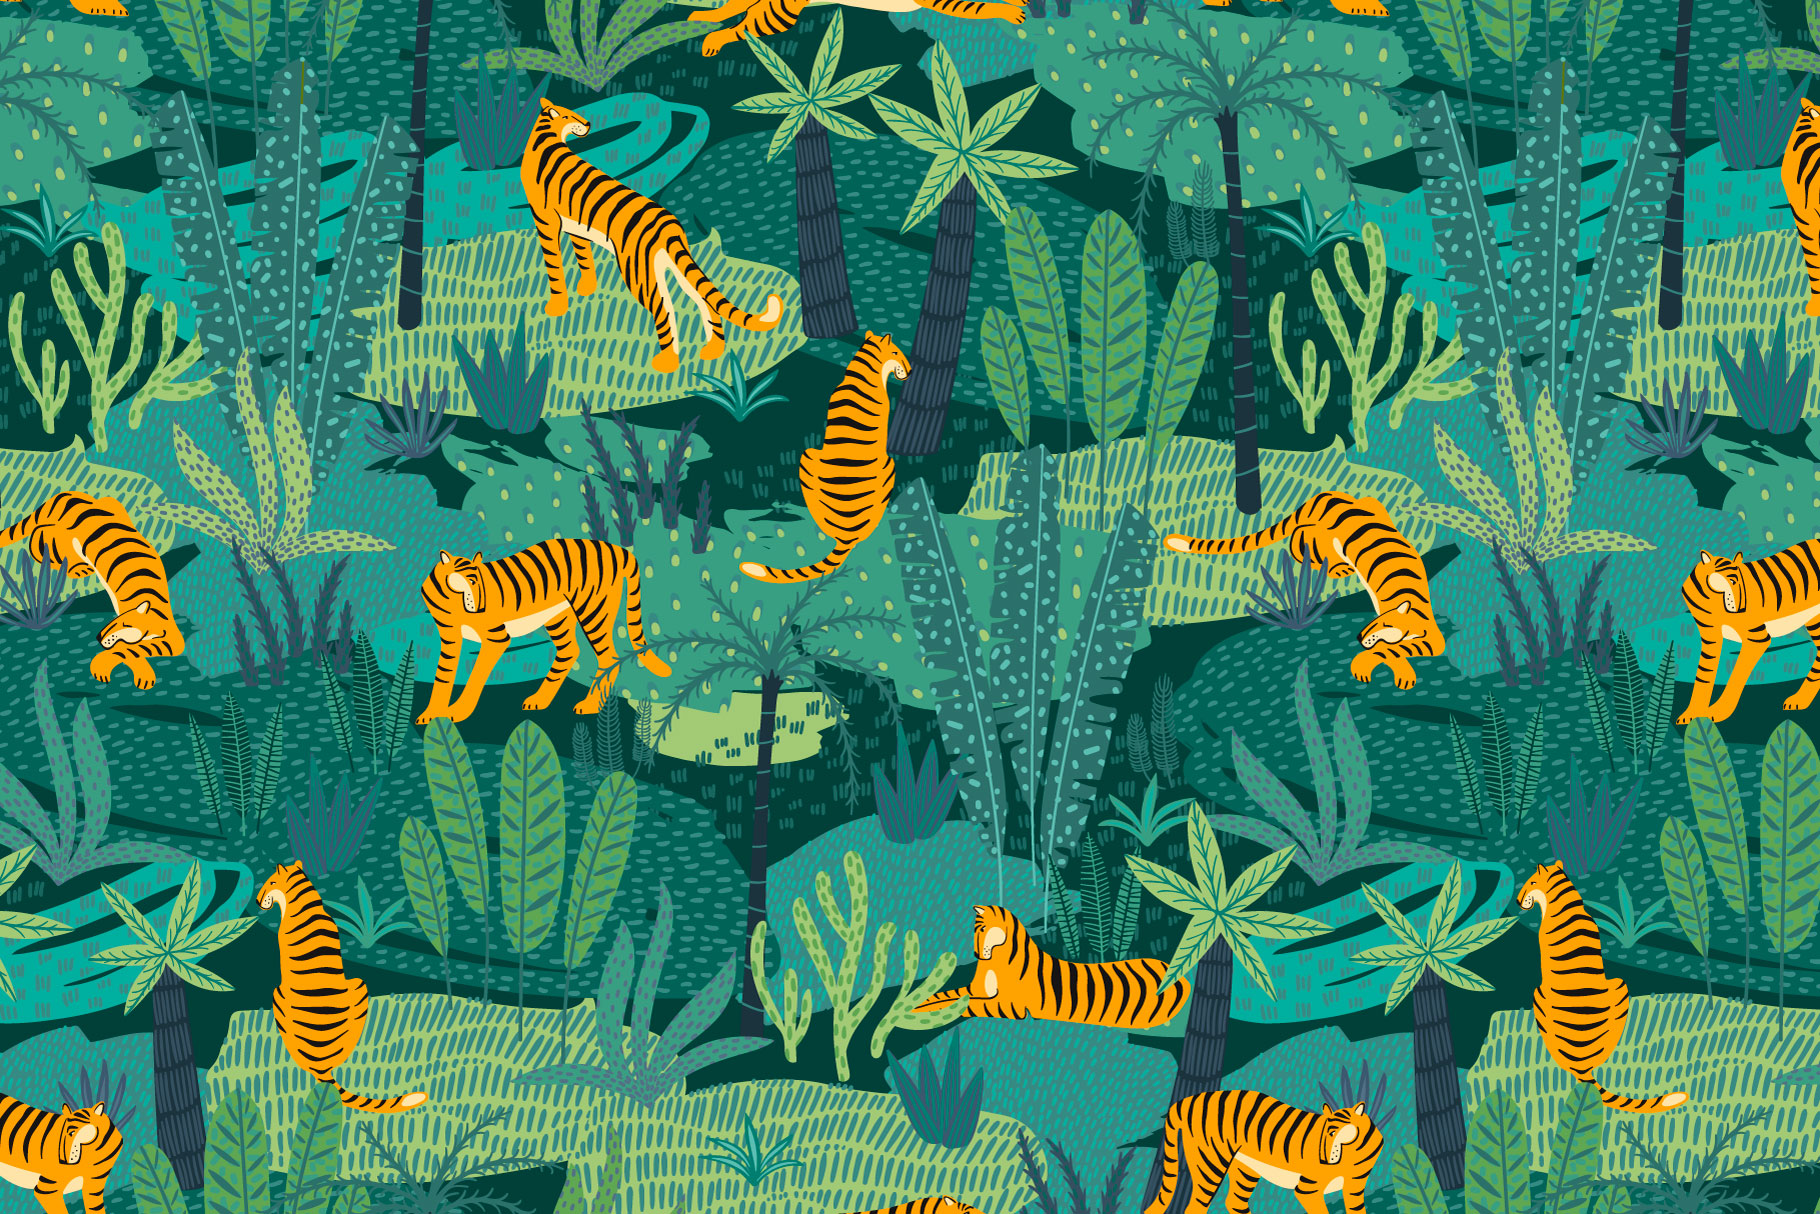 Tiger collection. Patterns & clipart example image 7